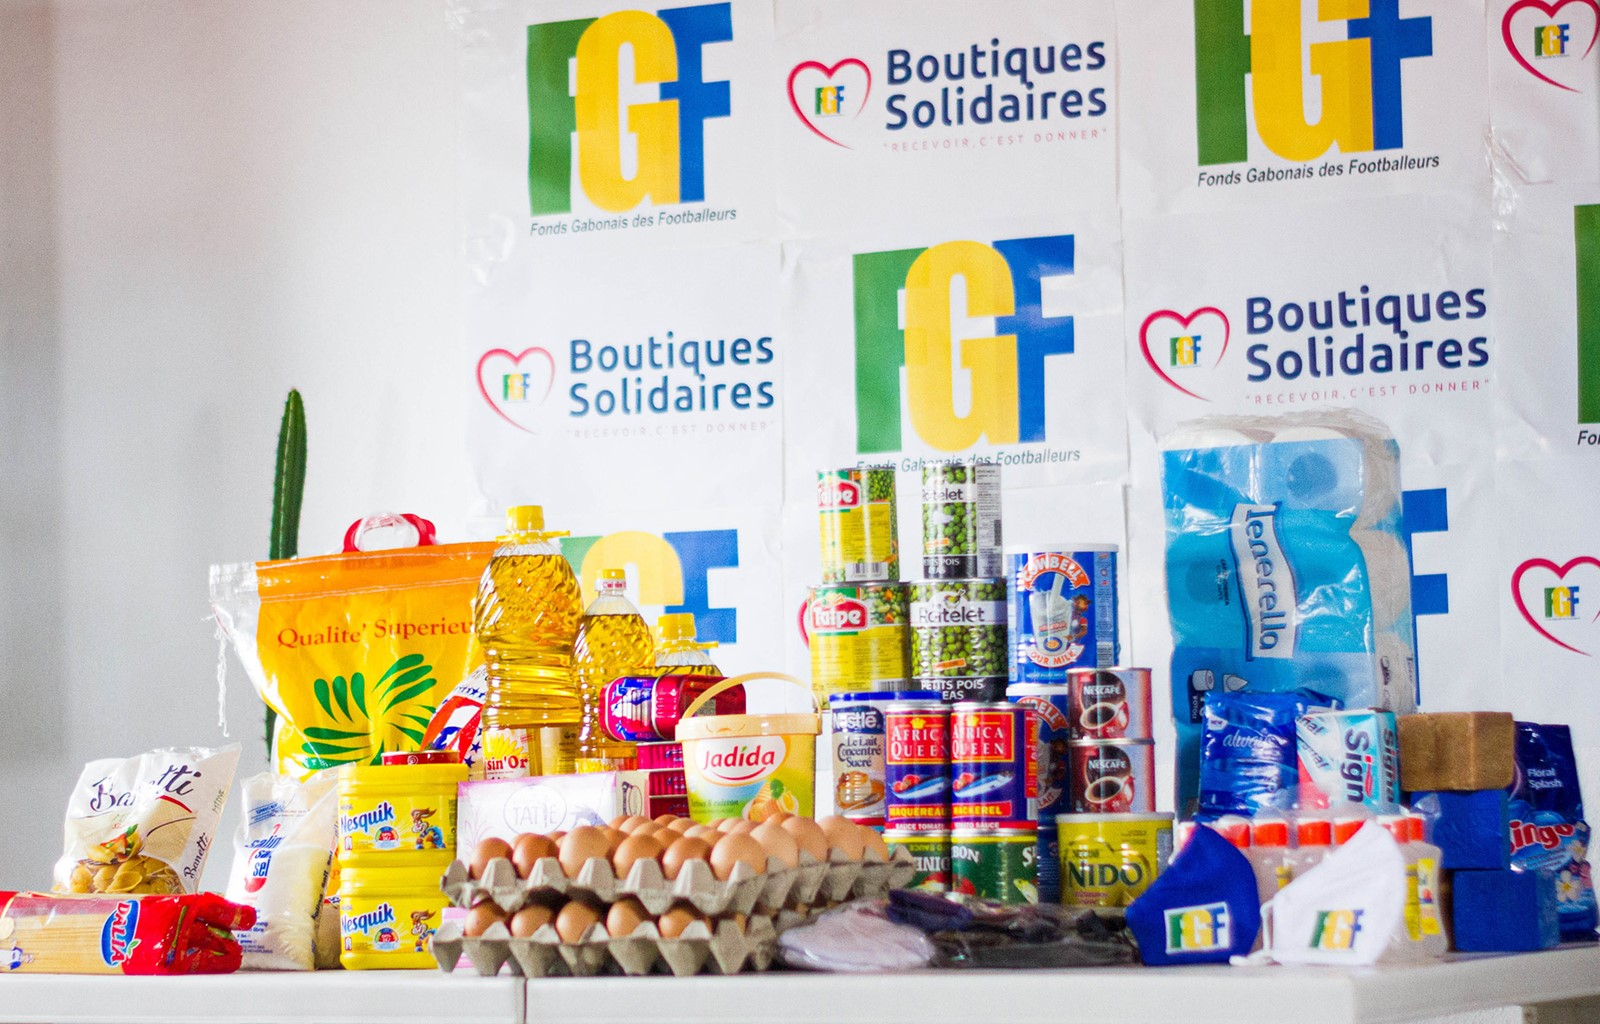 Gabon Boutigue Solidaire 2500 1600